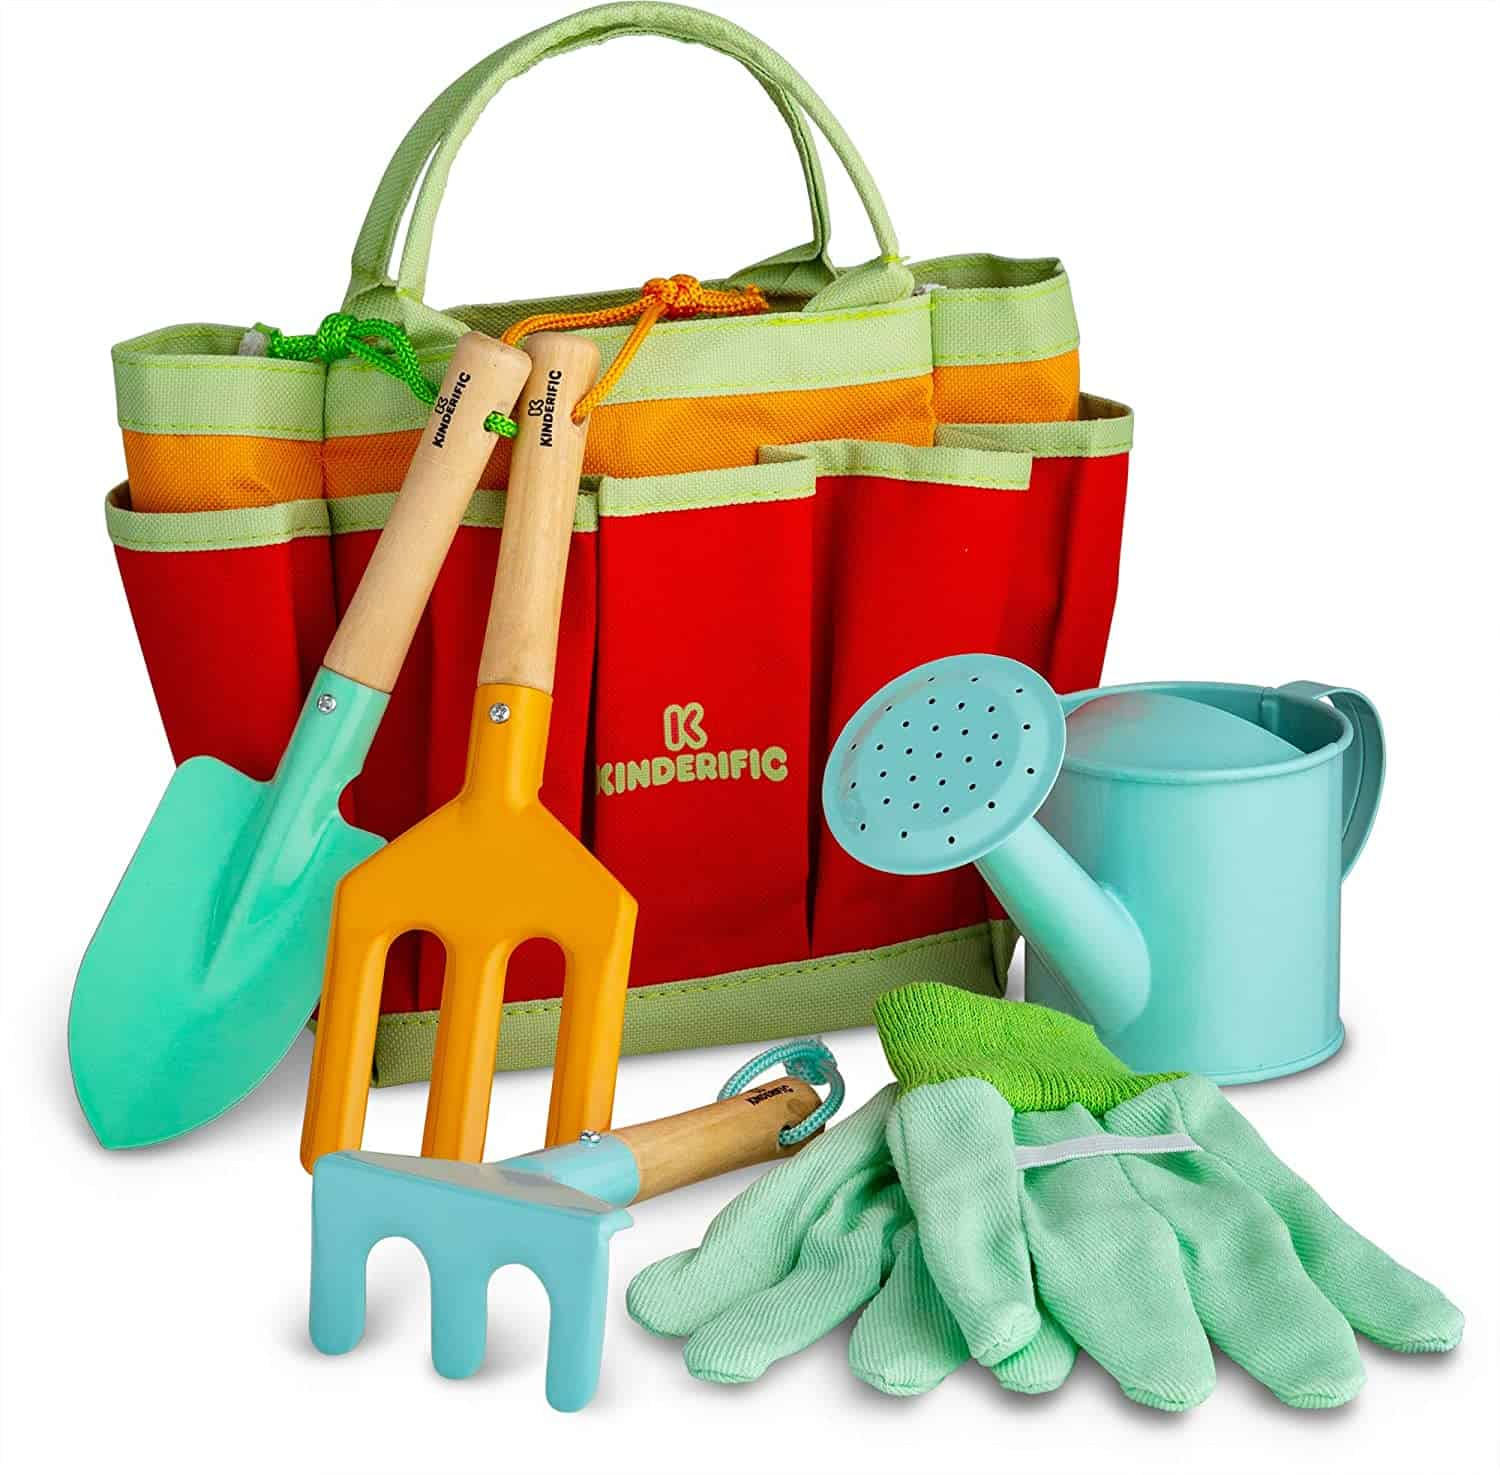 kids gardening tool kit outdoor toys for toddlers